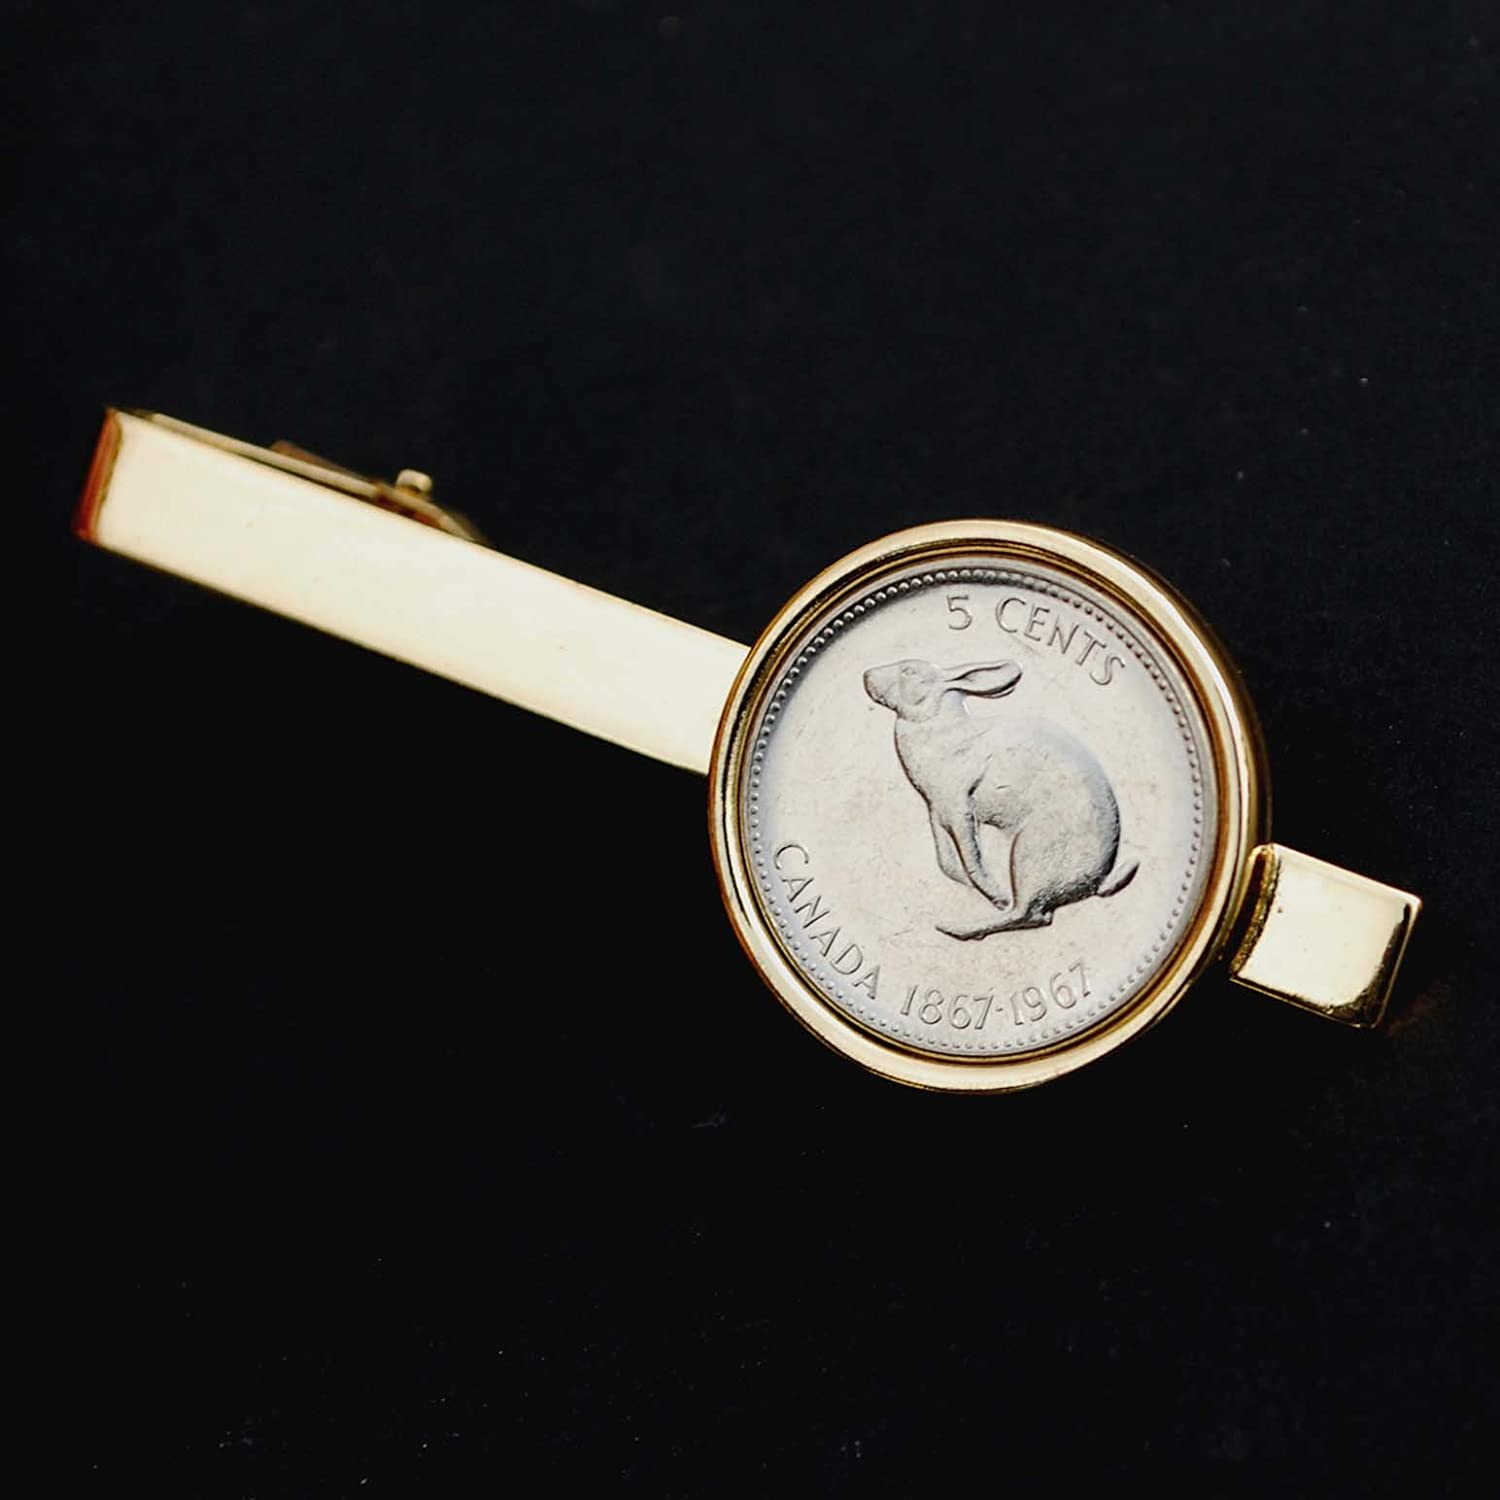 Canada 1967 Five Cents Gem BU Uncirculated Nickel Coin Gold Plated Tie Clip Clasp Bar - Snowshoe Rabbit